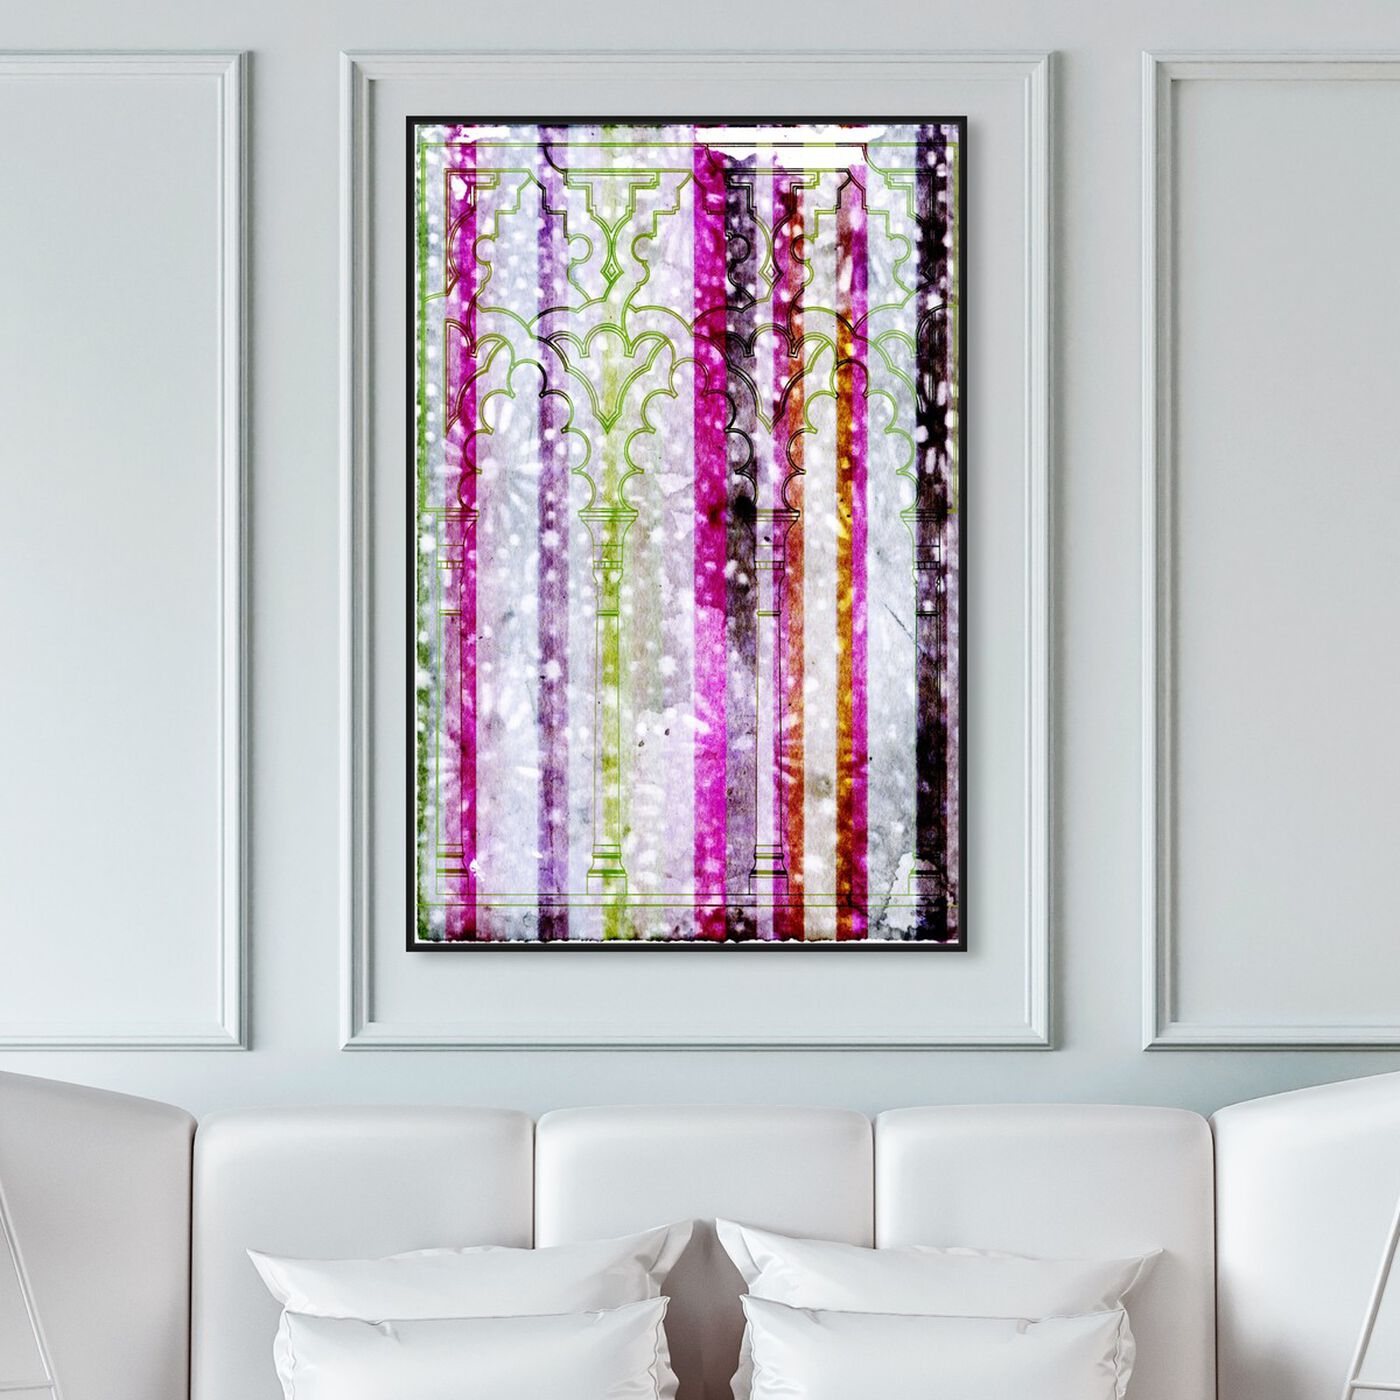 Hanging view of Sevilla Neon featuring abstract and textures art.